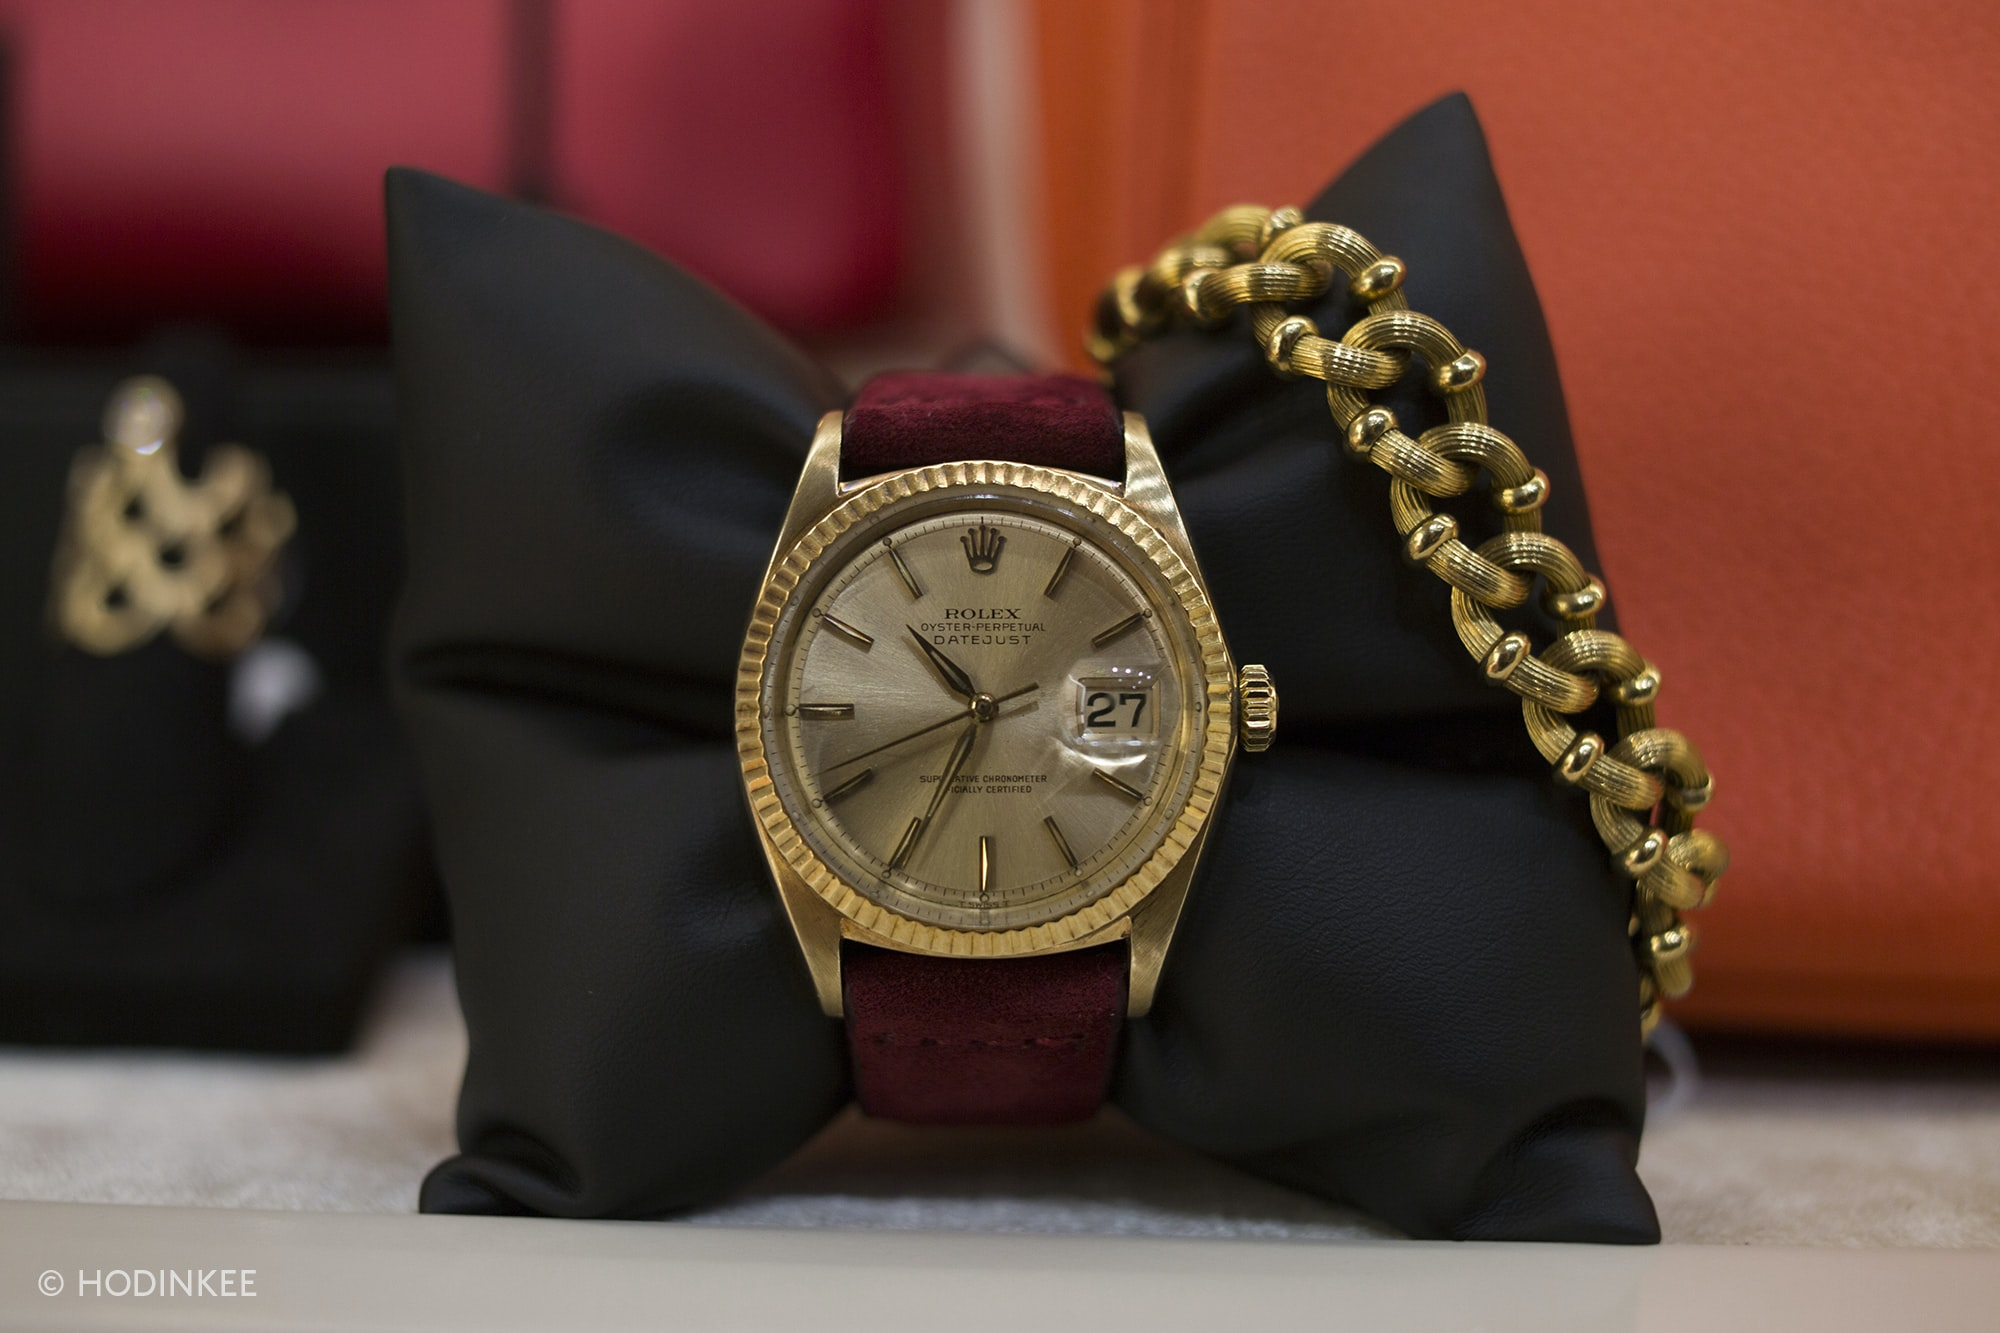 Photo Report: The HODINKEE Ladies' Collection At Material Good Photo Report: The HODINKEE Ladies' Collection At Material Good 20015202 copy